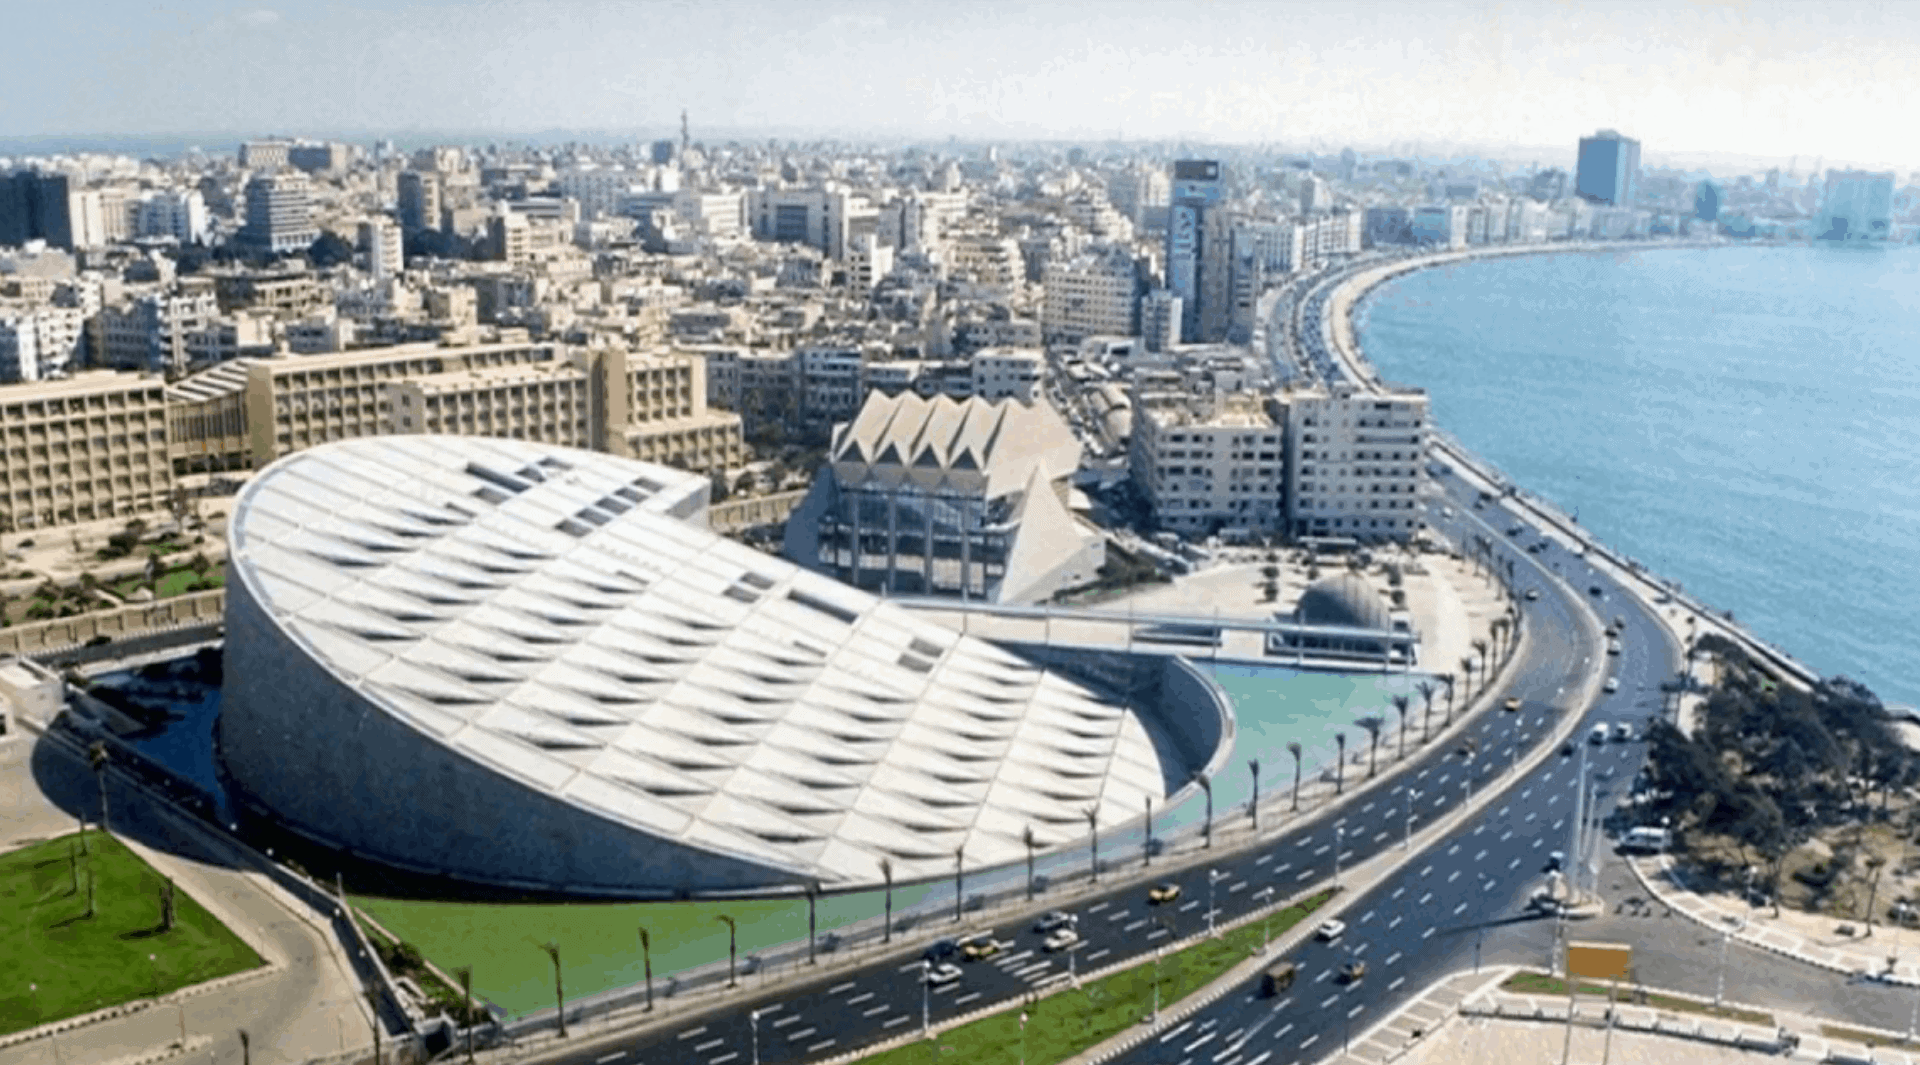 Great Library of Alexandria